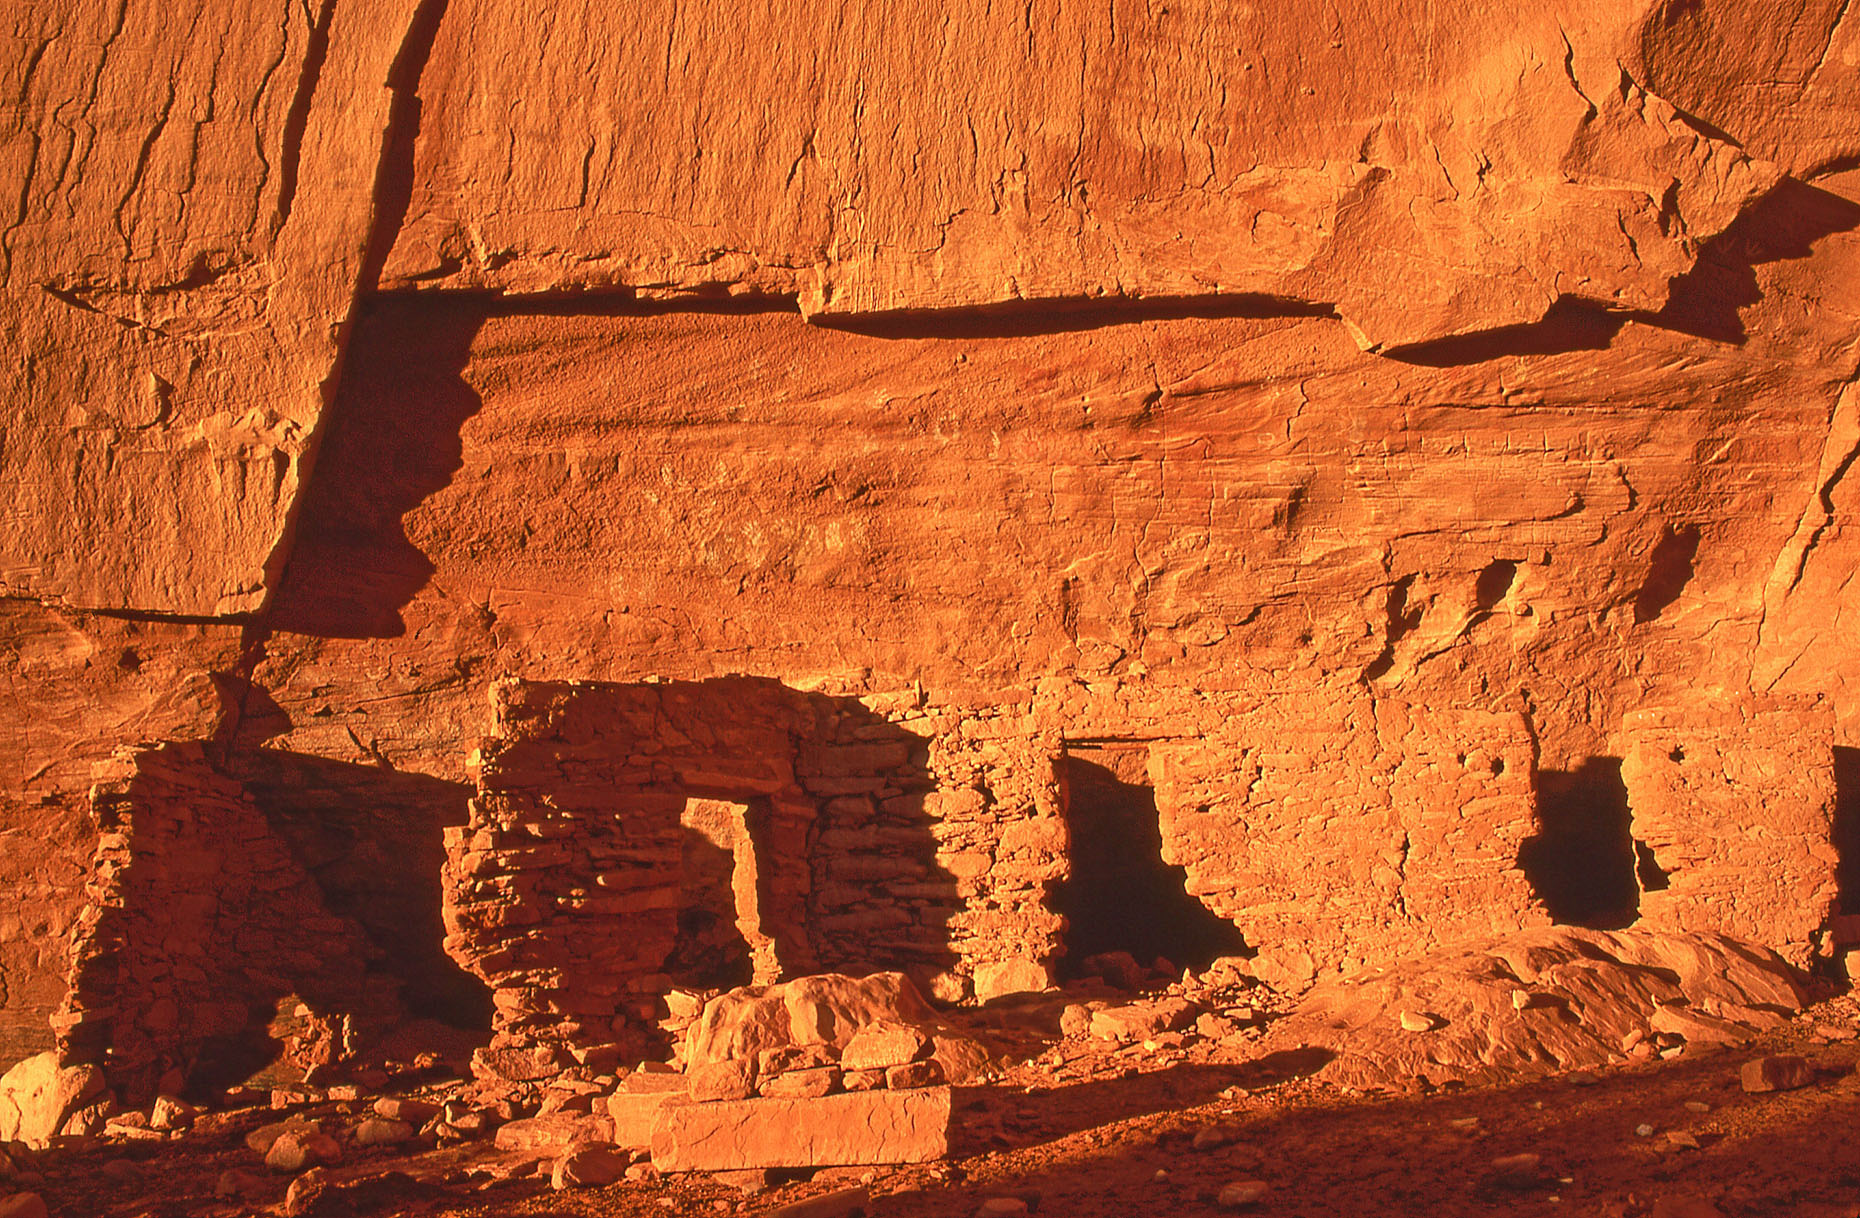 House of Many Hands, John Annerino, Monument Valley Navajo Tribal Park, Utah-Arizona